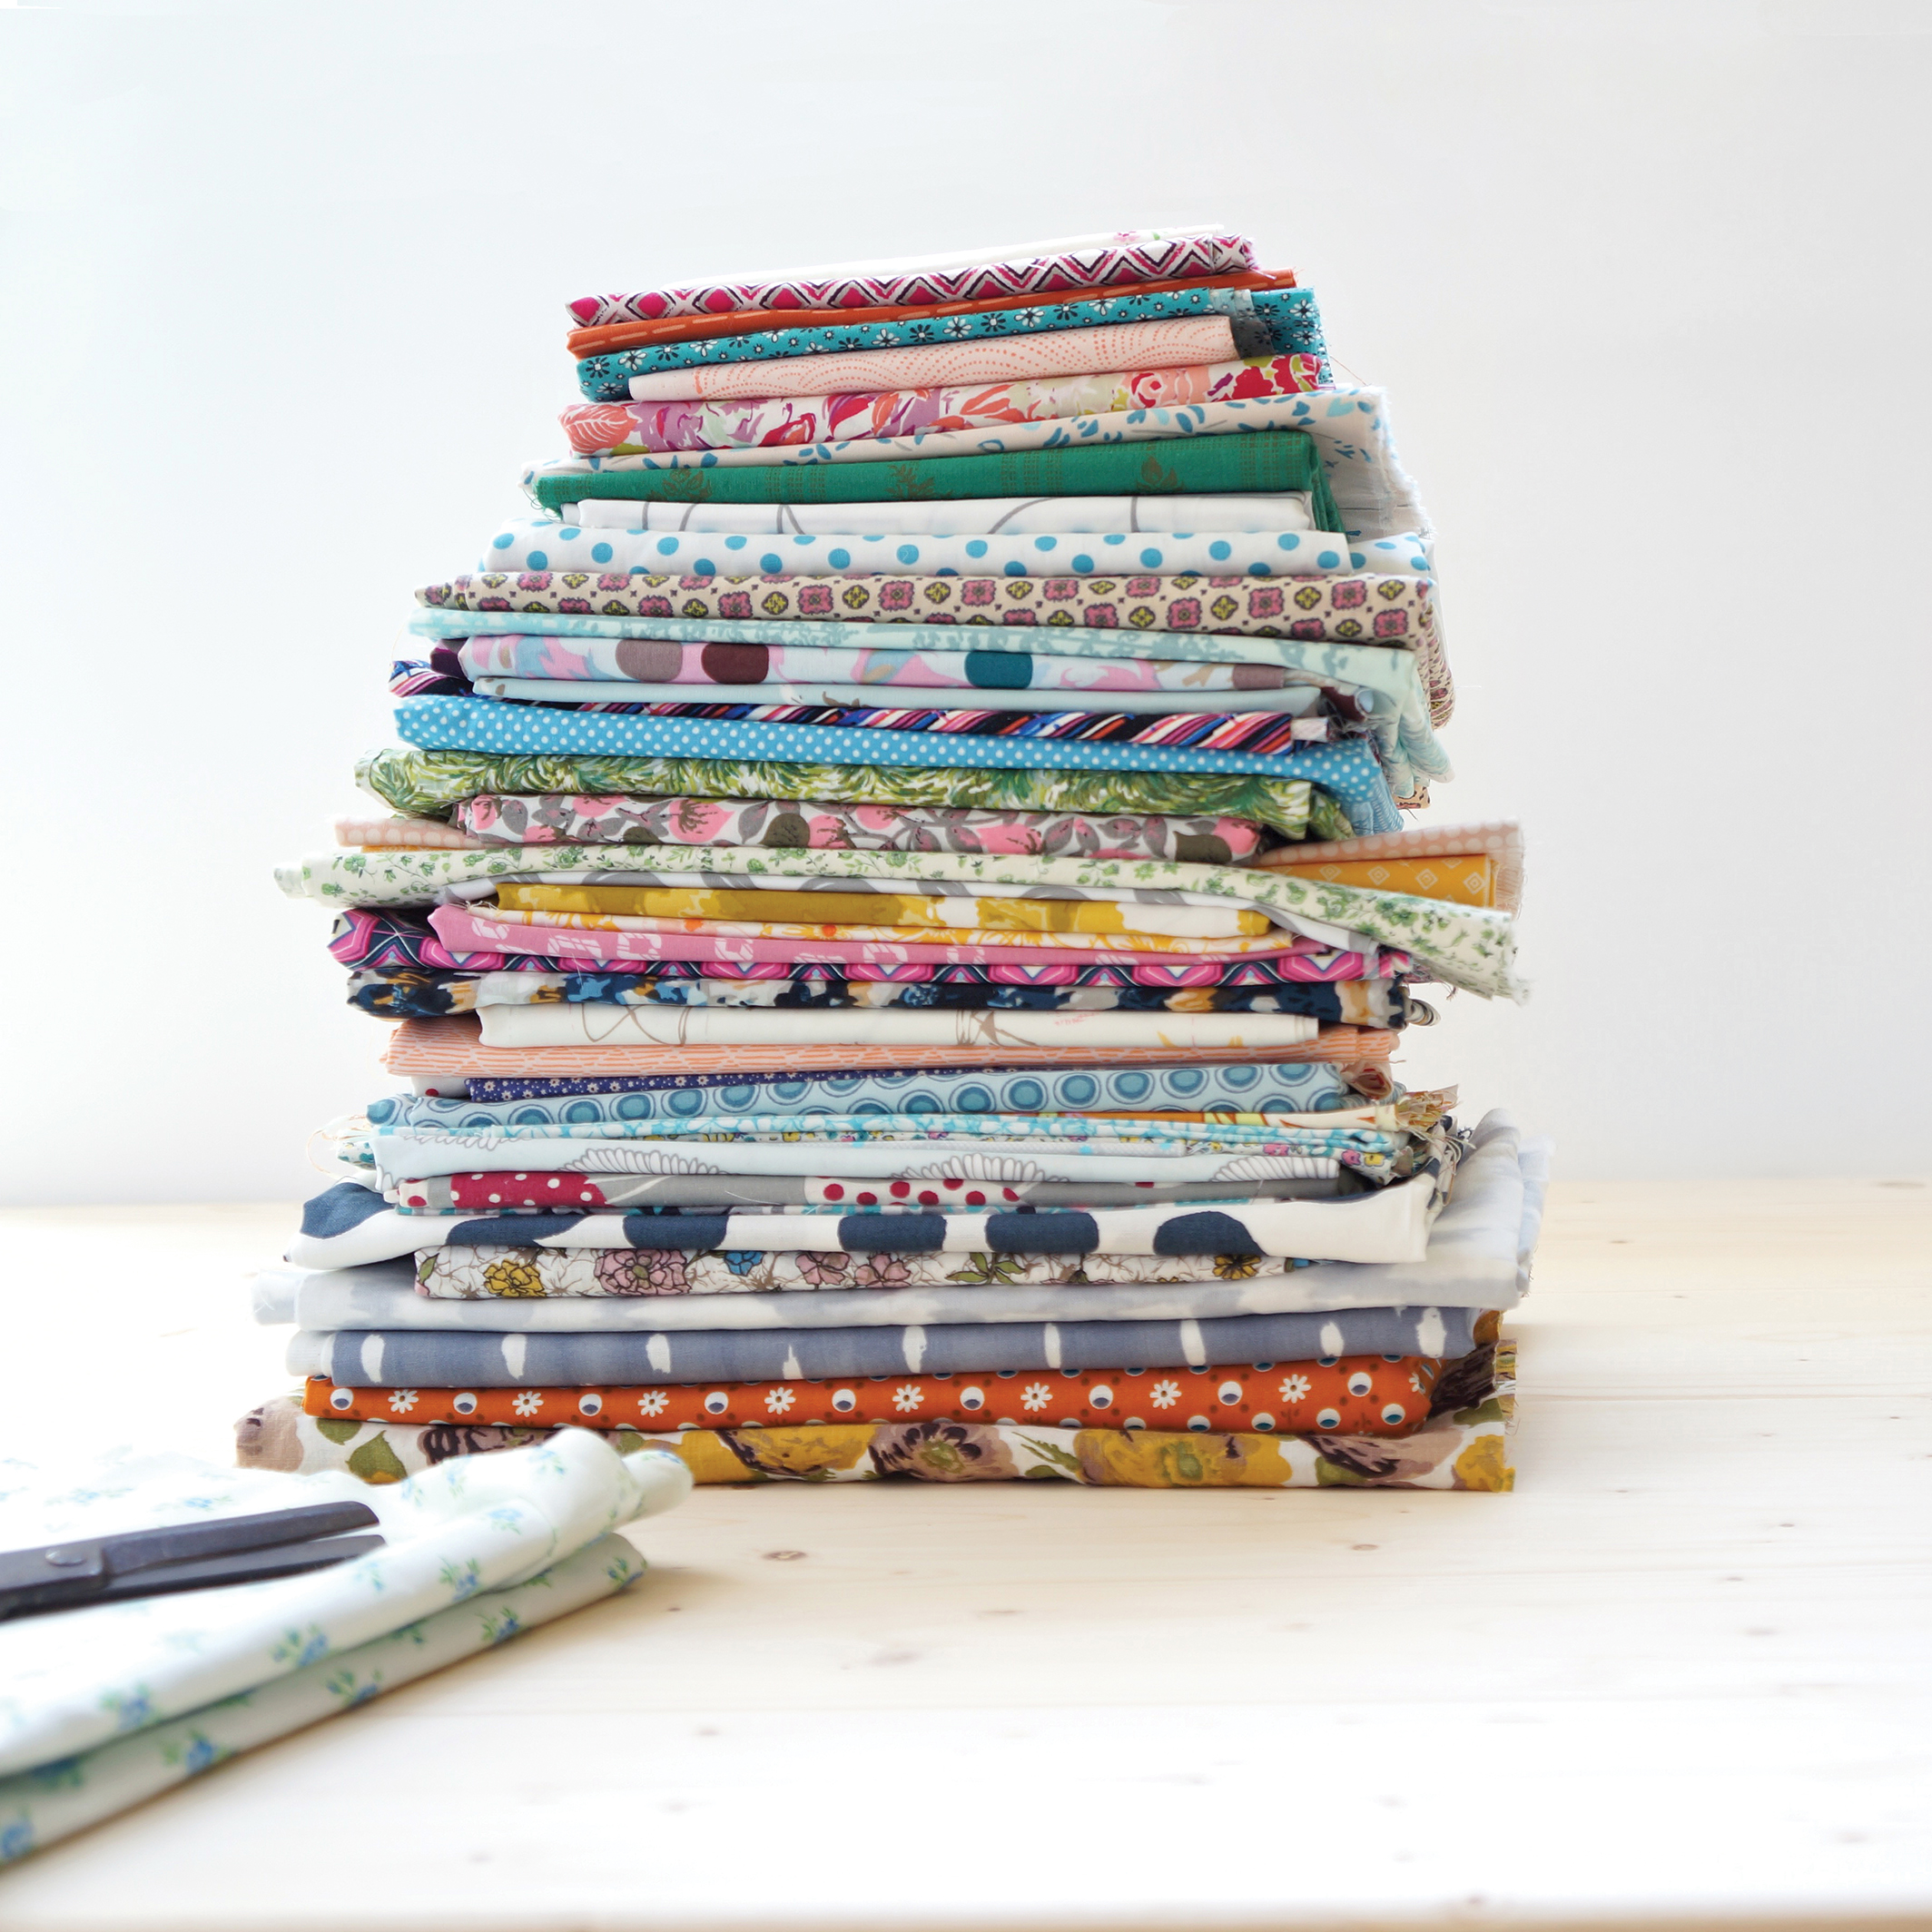 Fabric stack photo by Sharon Holland